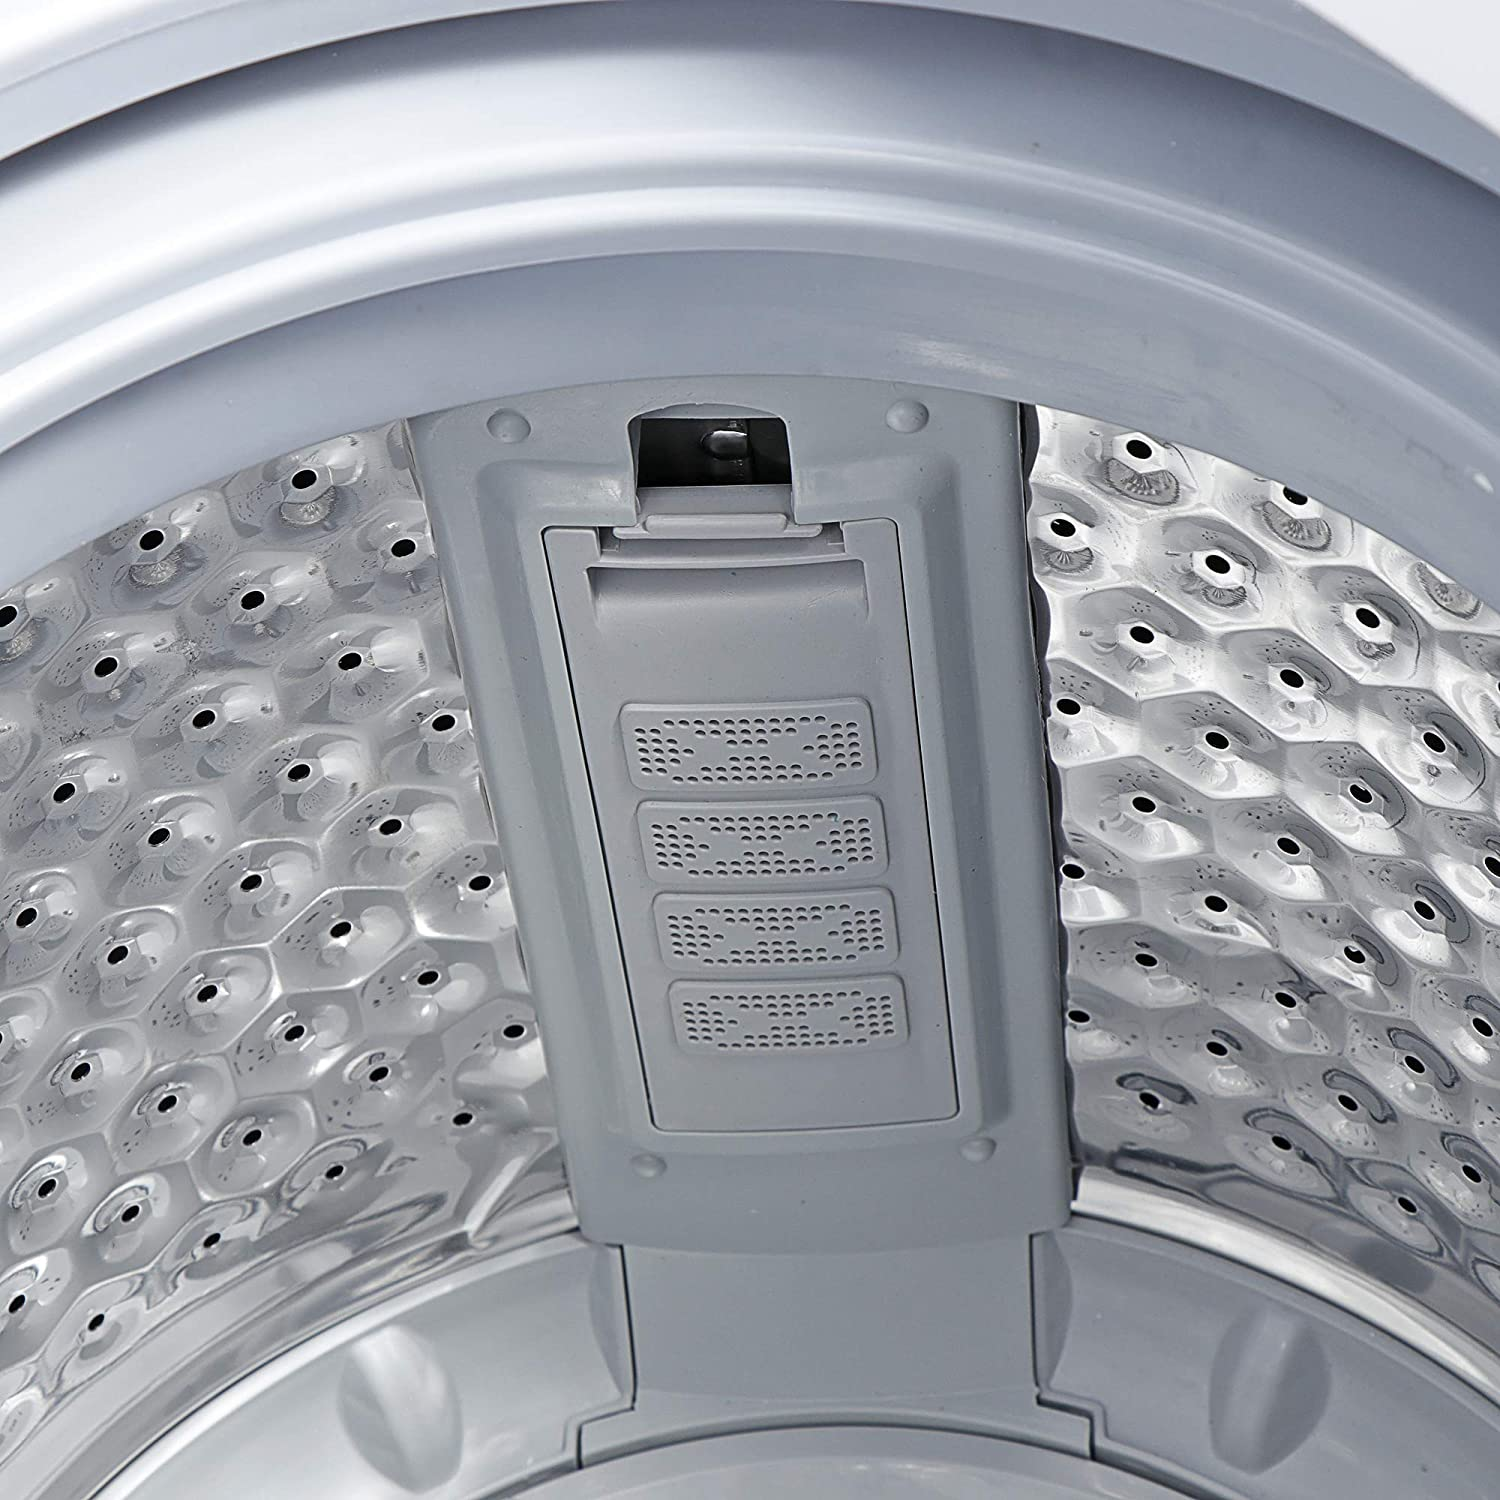 10 Preset Programs Compact Design Laundry Washer /& Spin Dryer with 8 LBS Capacity 8 Water Levels SUPER DEAL Newest Full Automatic Washing Machine Gravity Drainage